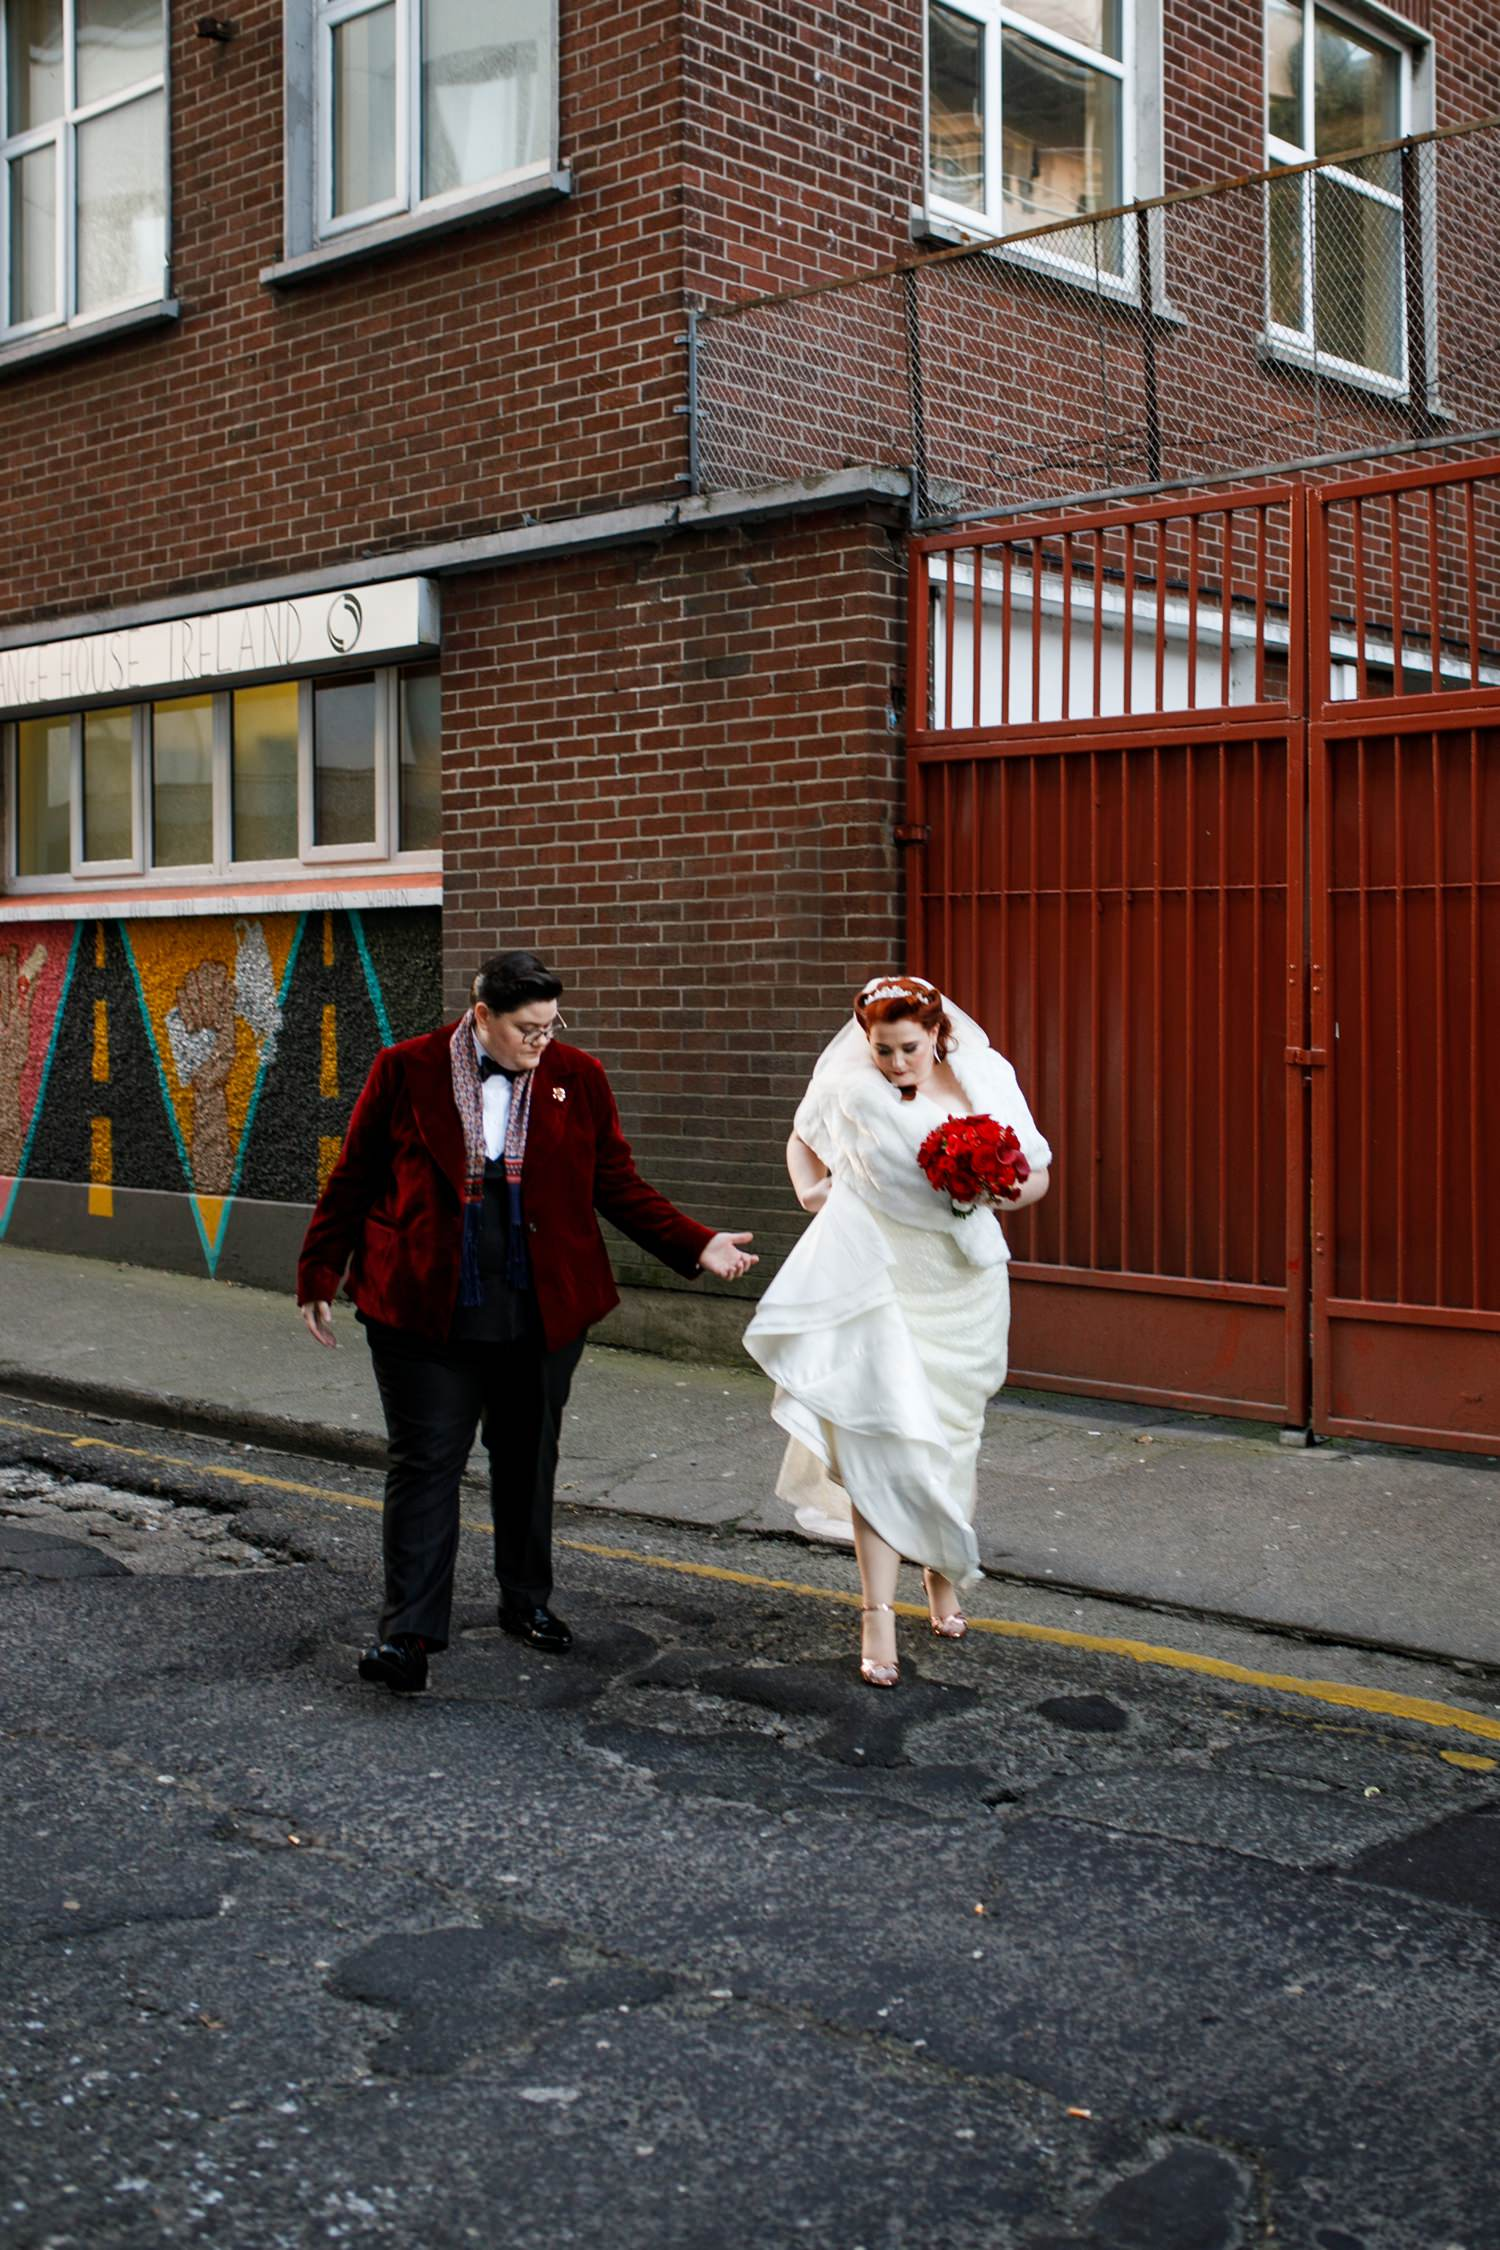 Elisha-Clarke-Photography-Dublin-City-Wedding_00490.jpg